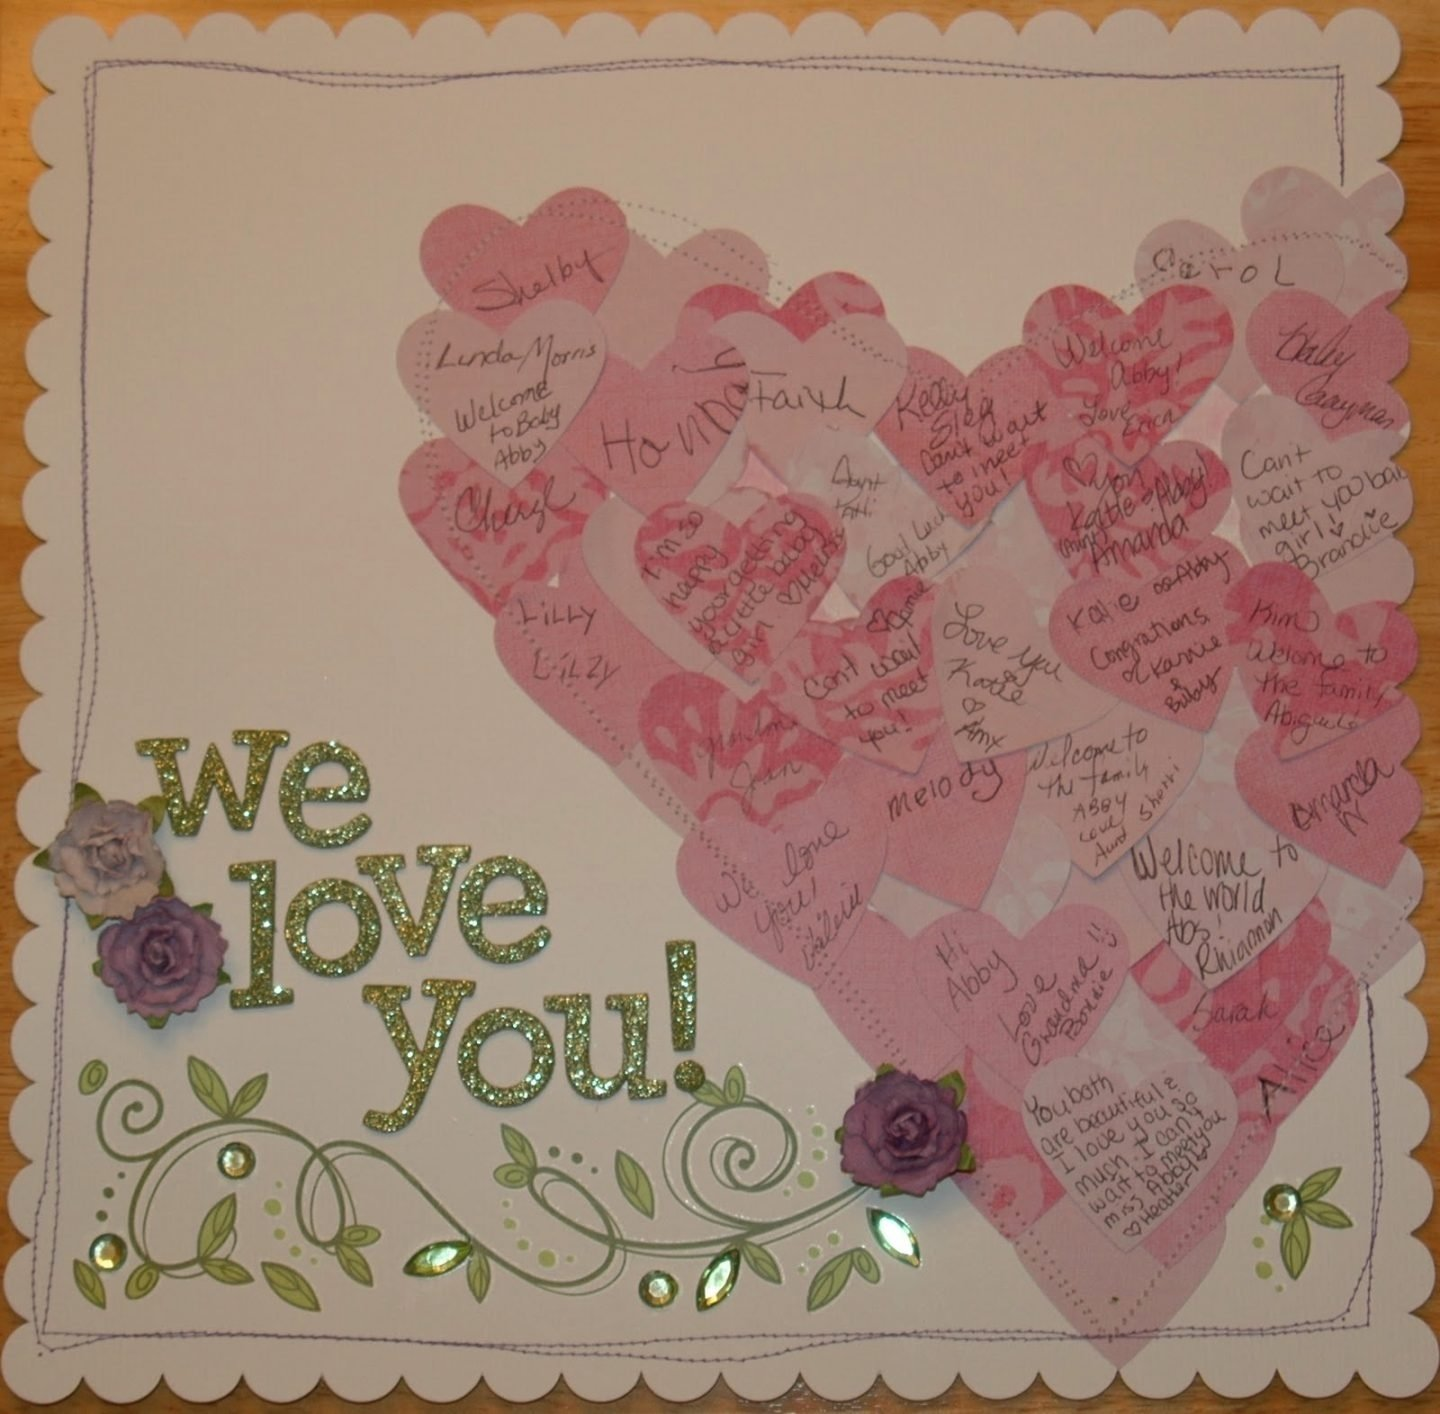 baby shower guestbook ideas amazing ideas #4 for my sister's baby